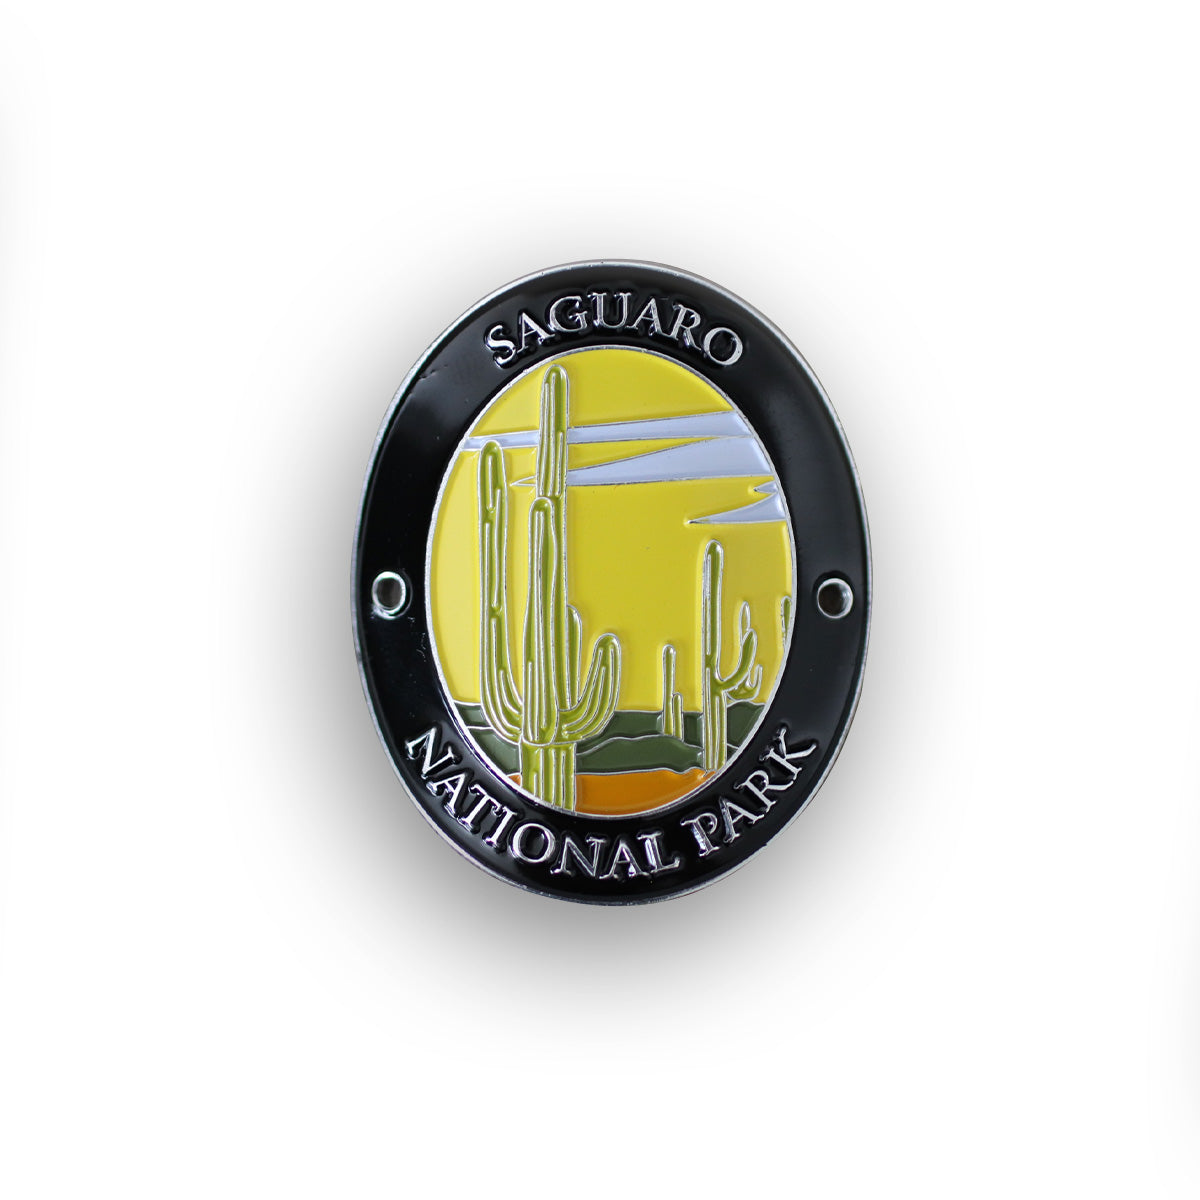 Saguaro National Park Traveler Walking Stick Medallion